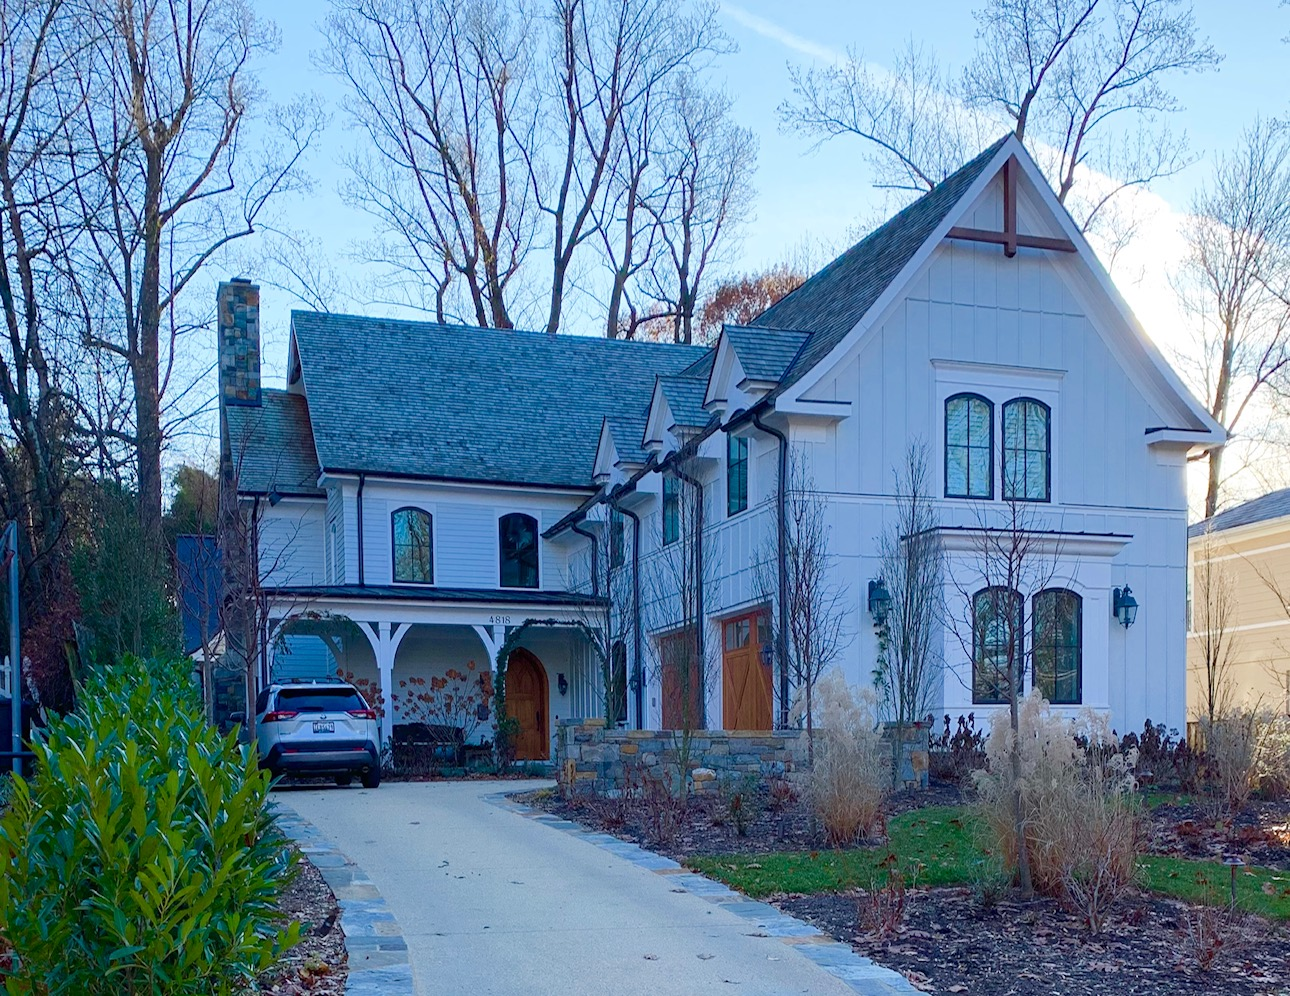 Somerset, MD Luxury Real Estate & Homes For Sale. Cumberland Ave. Artyom Shmatko Luxury Real Estate Agent